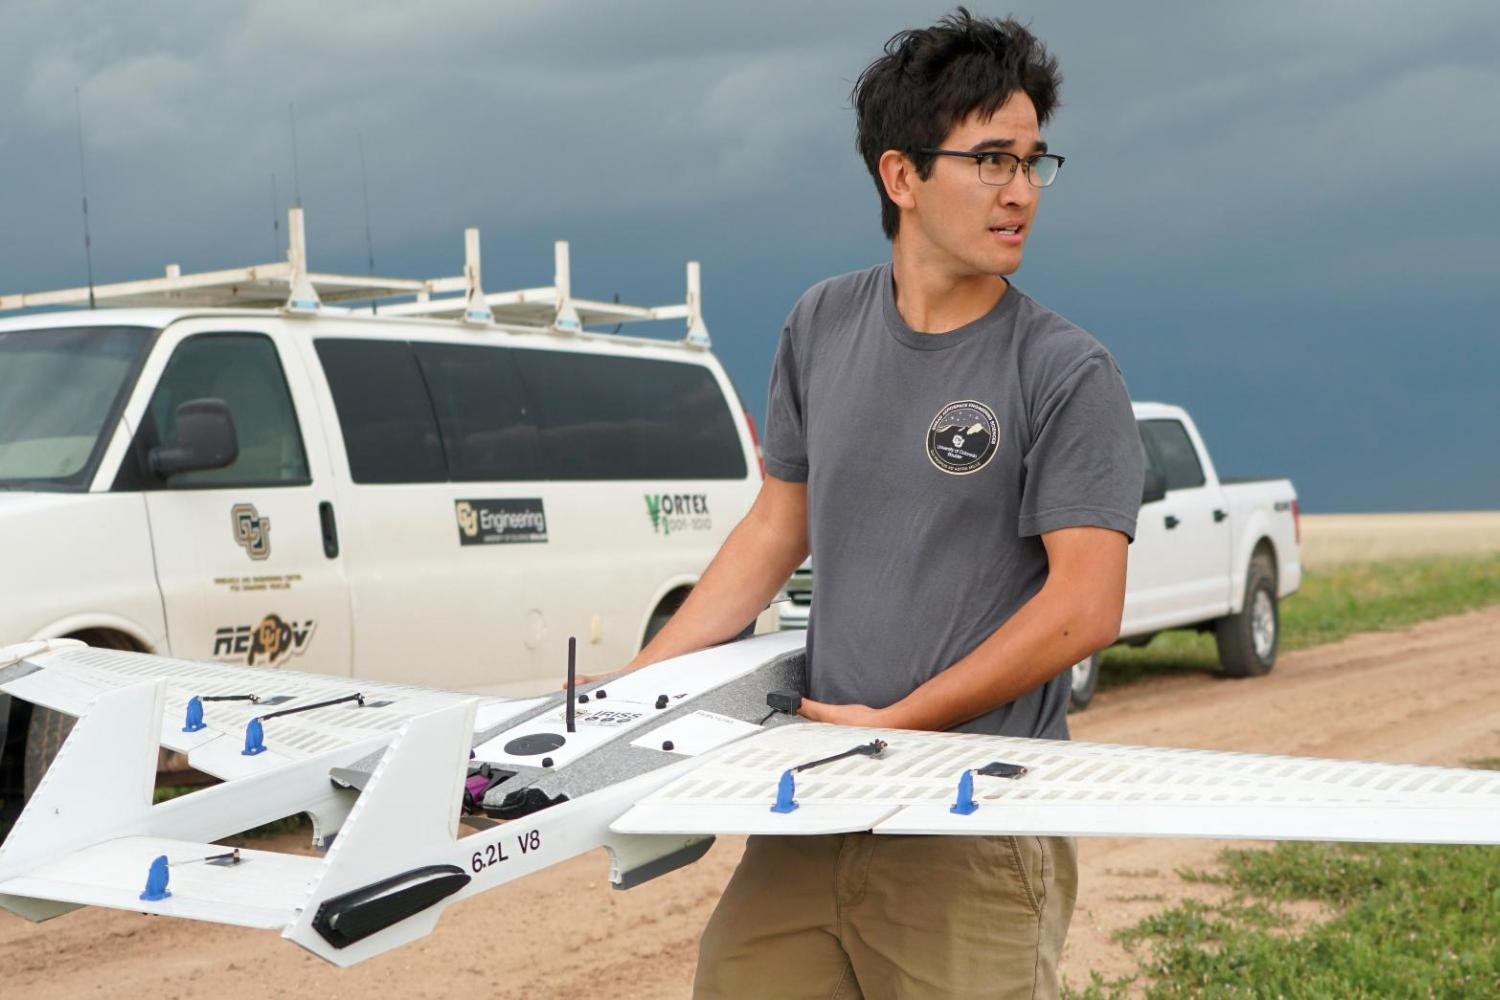 A student holding the drone in the field